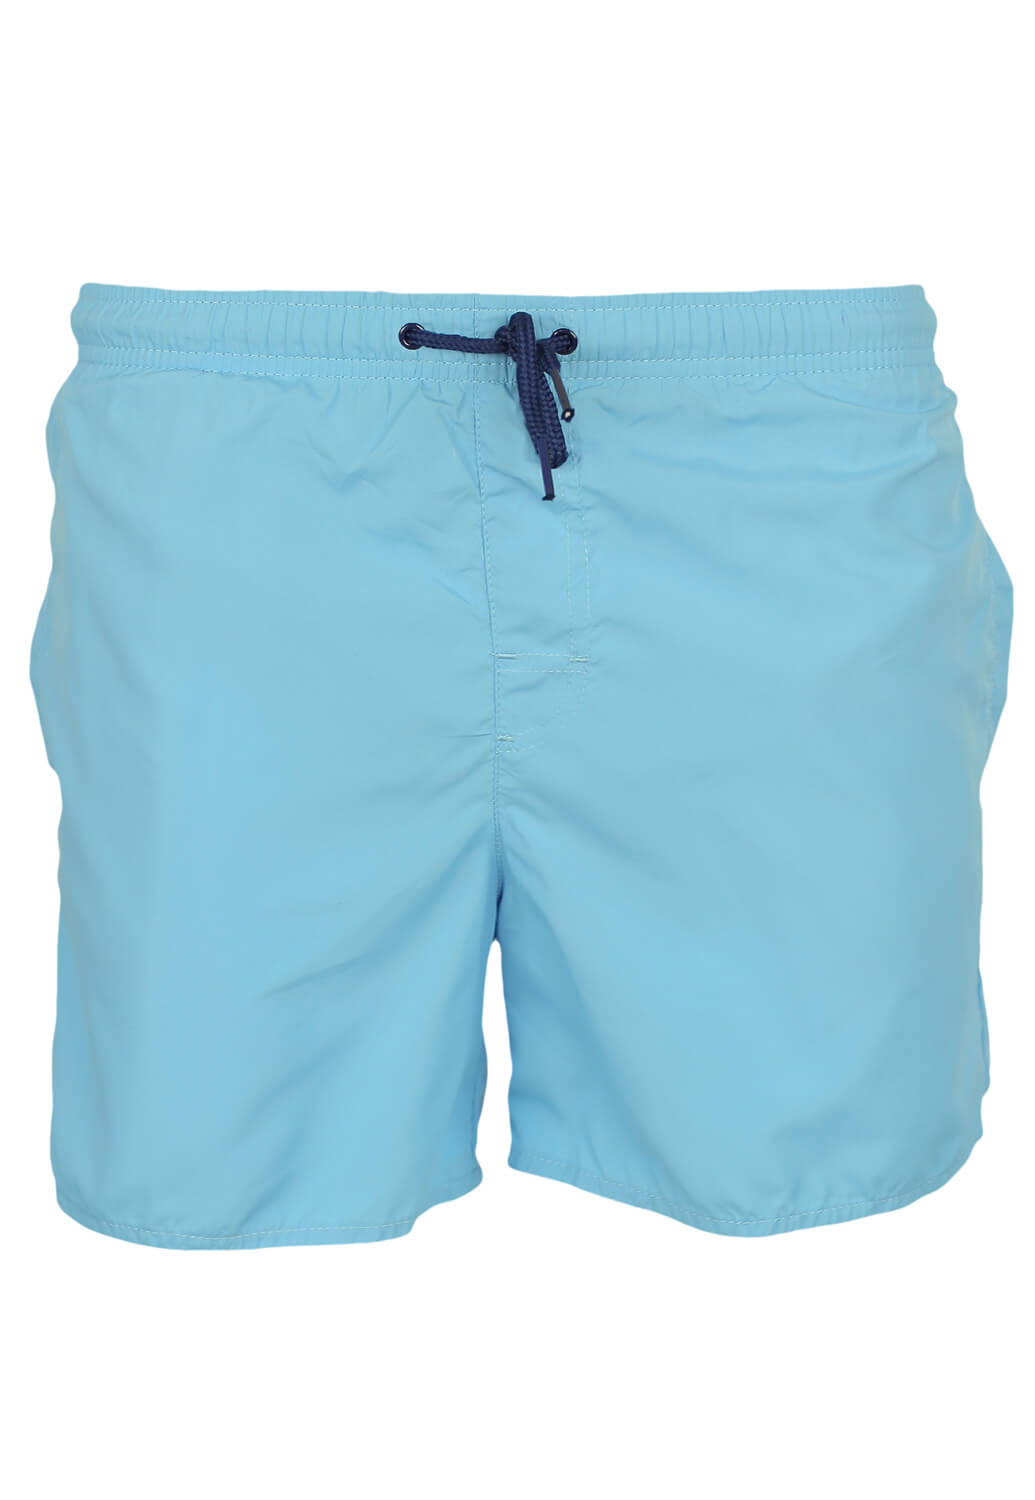 Pantaloni scurti Bershka Burt Light Blue